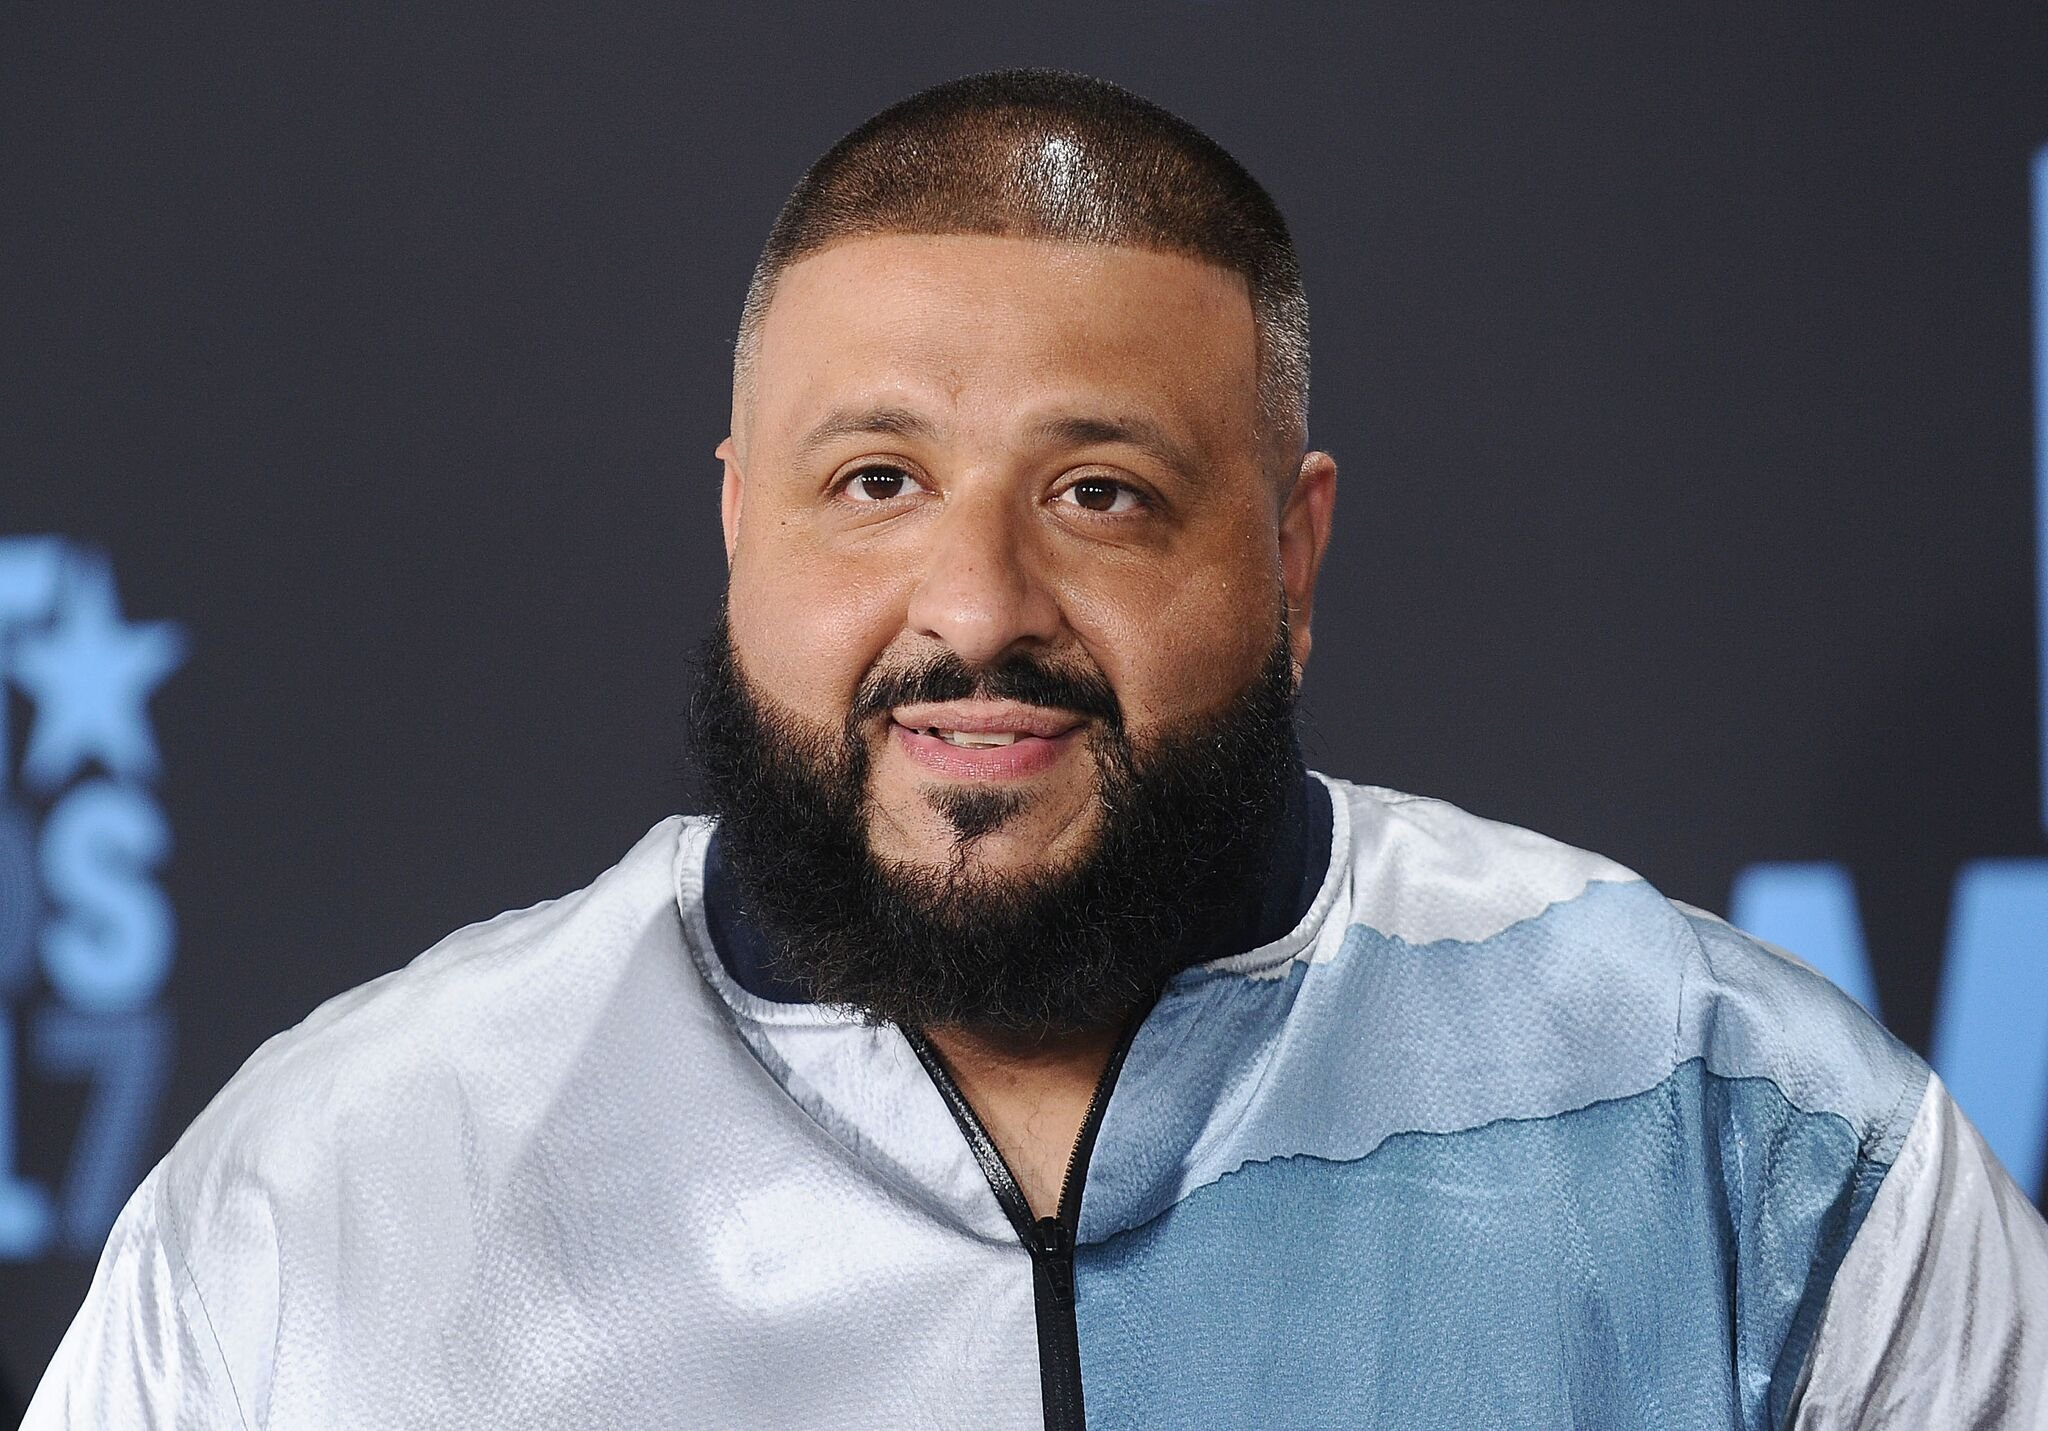 DJ Khaled attends the 2017 BET Awards at Microsoft Theater on June 25, 2017 | Photo: Getty Images